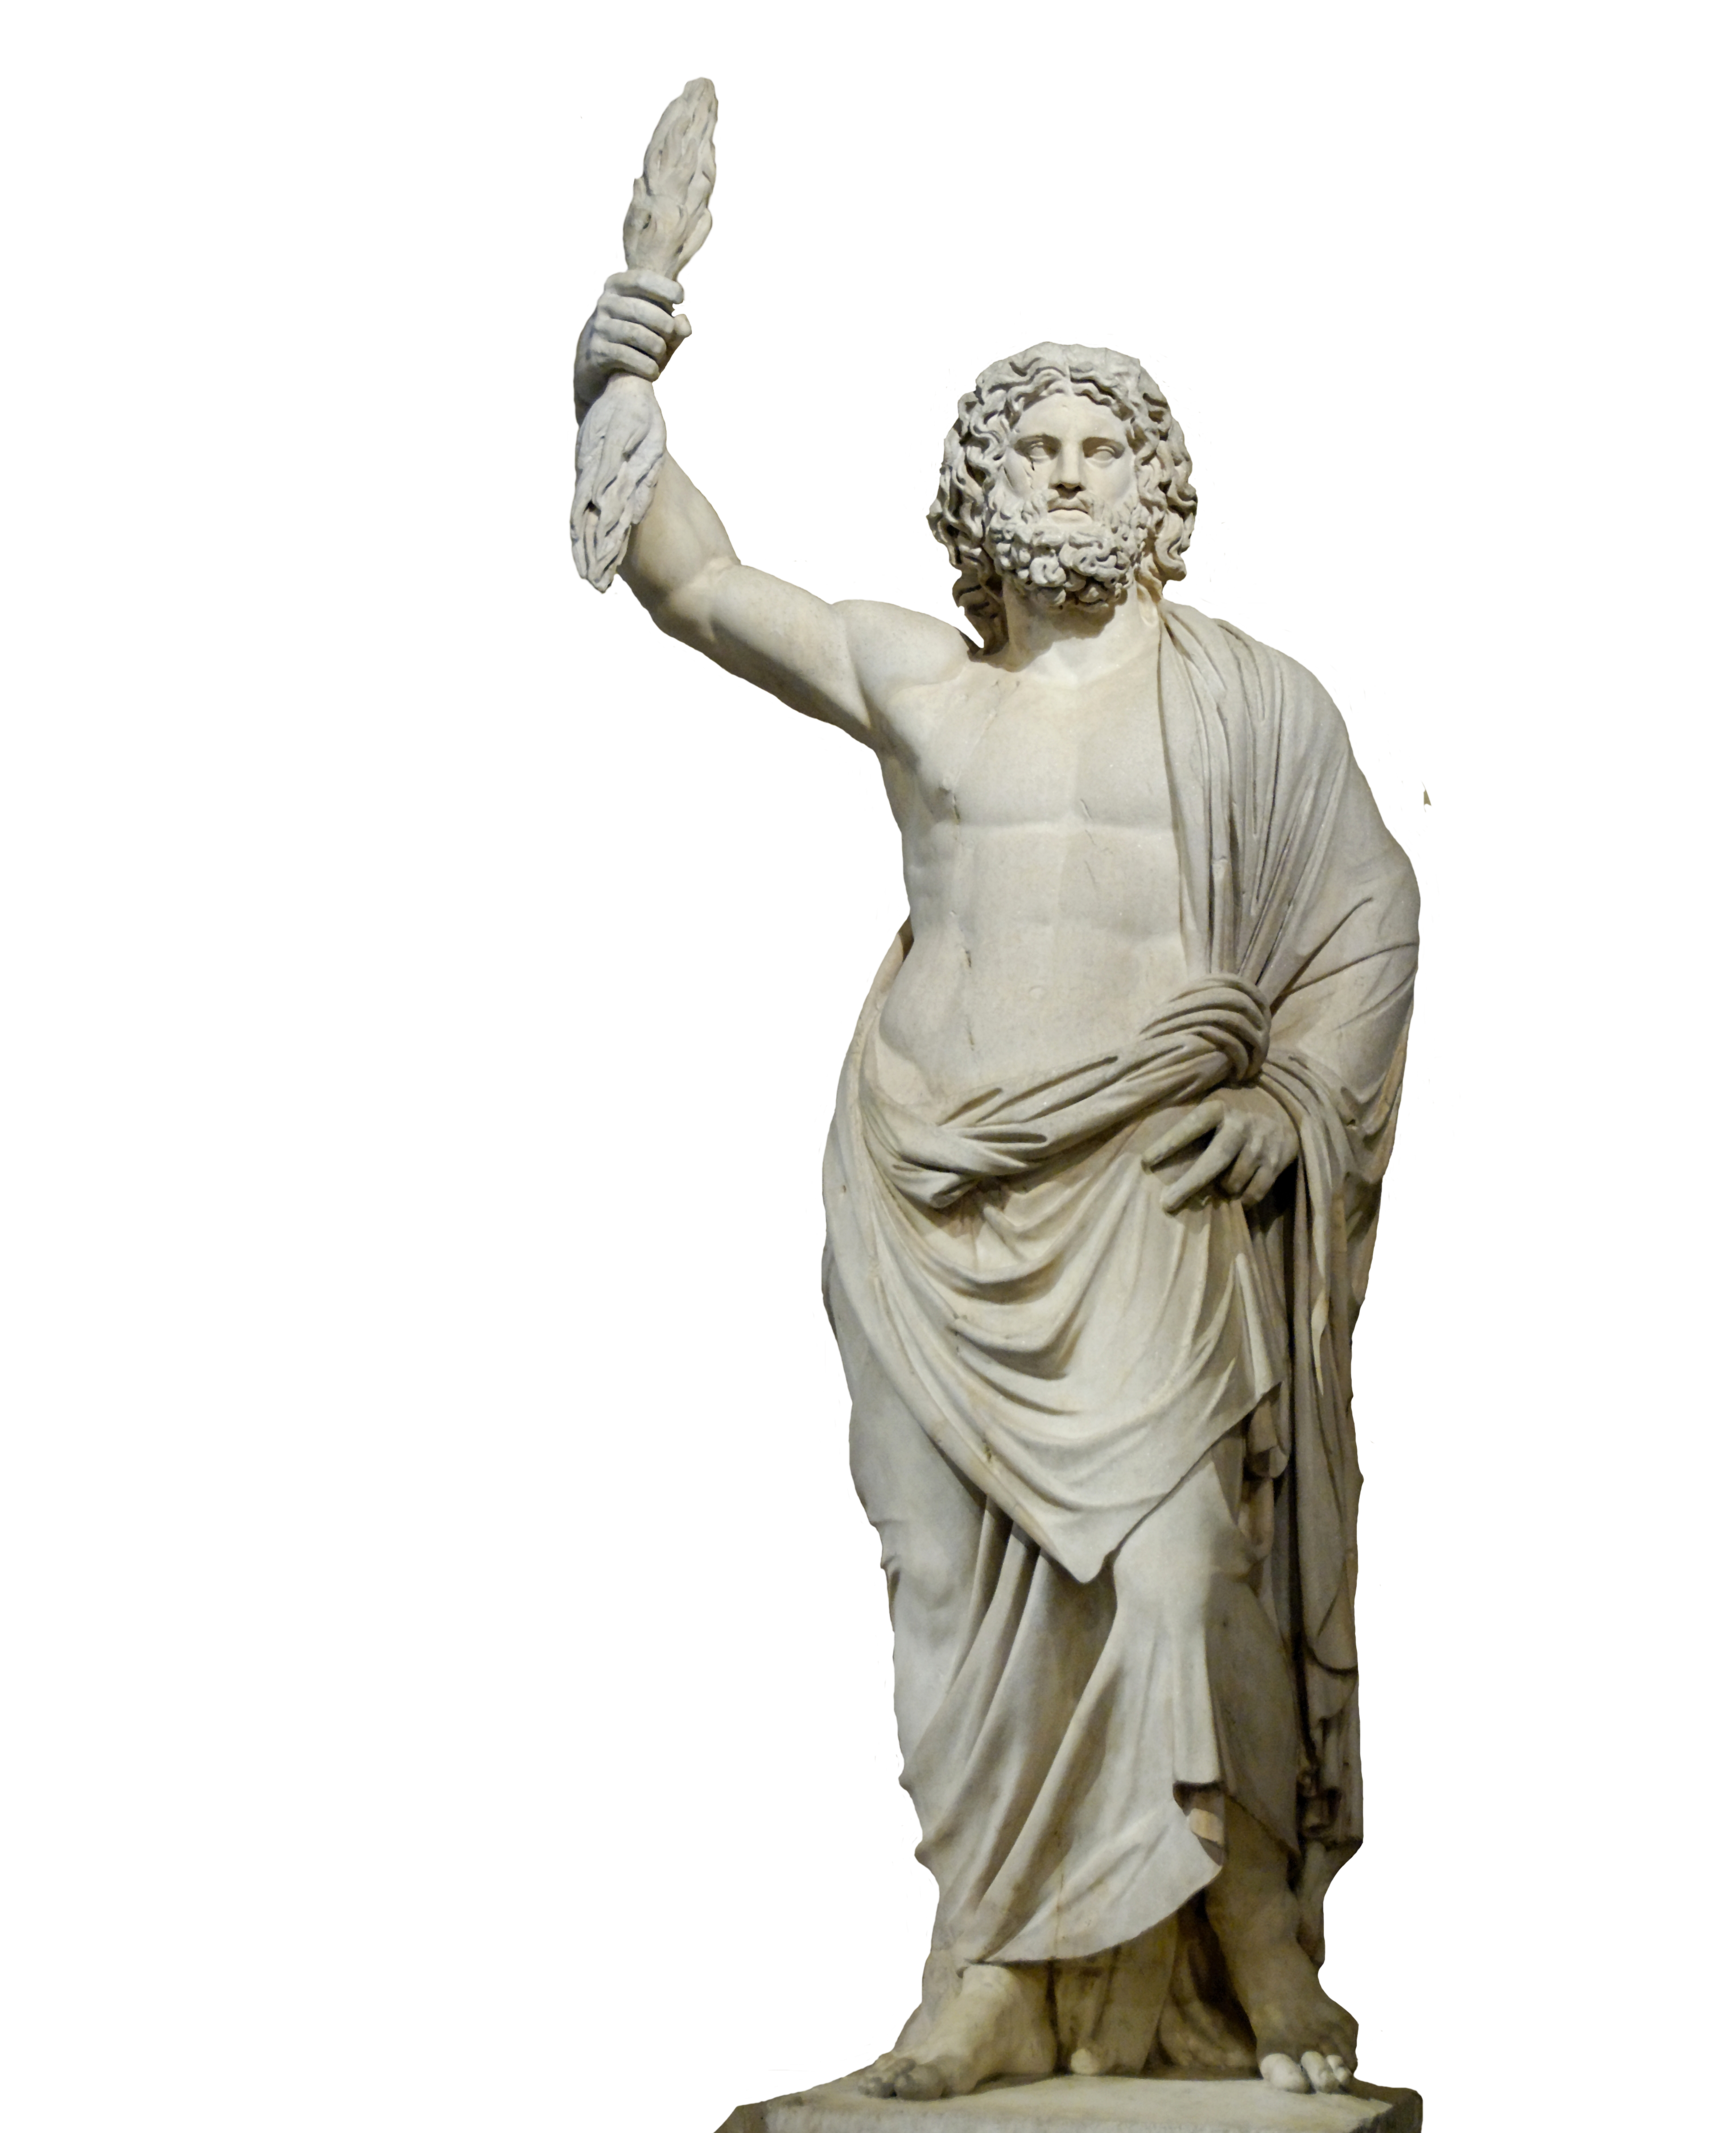 Hades statue png. Of zeus at olympia